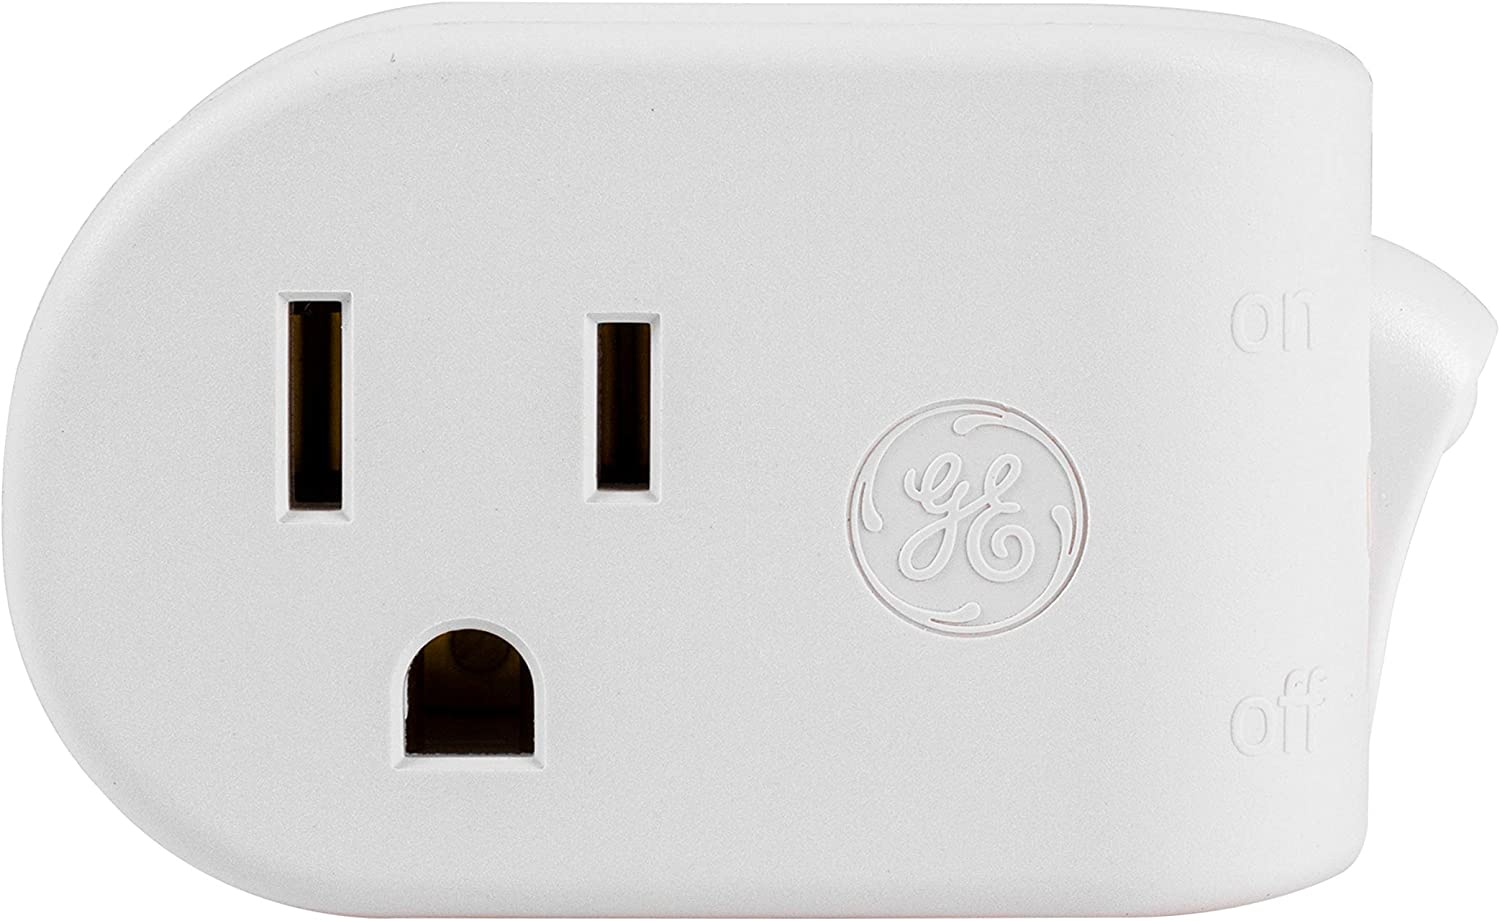 GE Grounded Outlet Power Switch, On Off Outlet Switch, 3 Prong, Plug in Switch, Outlet Adapter, Easy to Install, For Indoor Lights and Small Appliances, Energy Saving, UL Listed, White, 25511